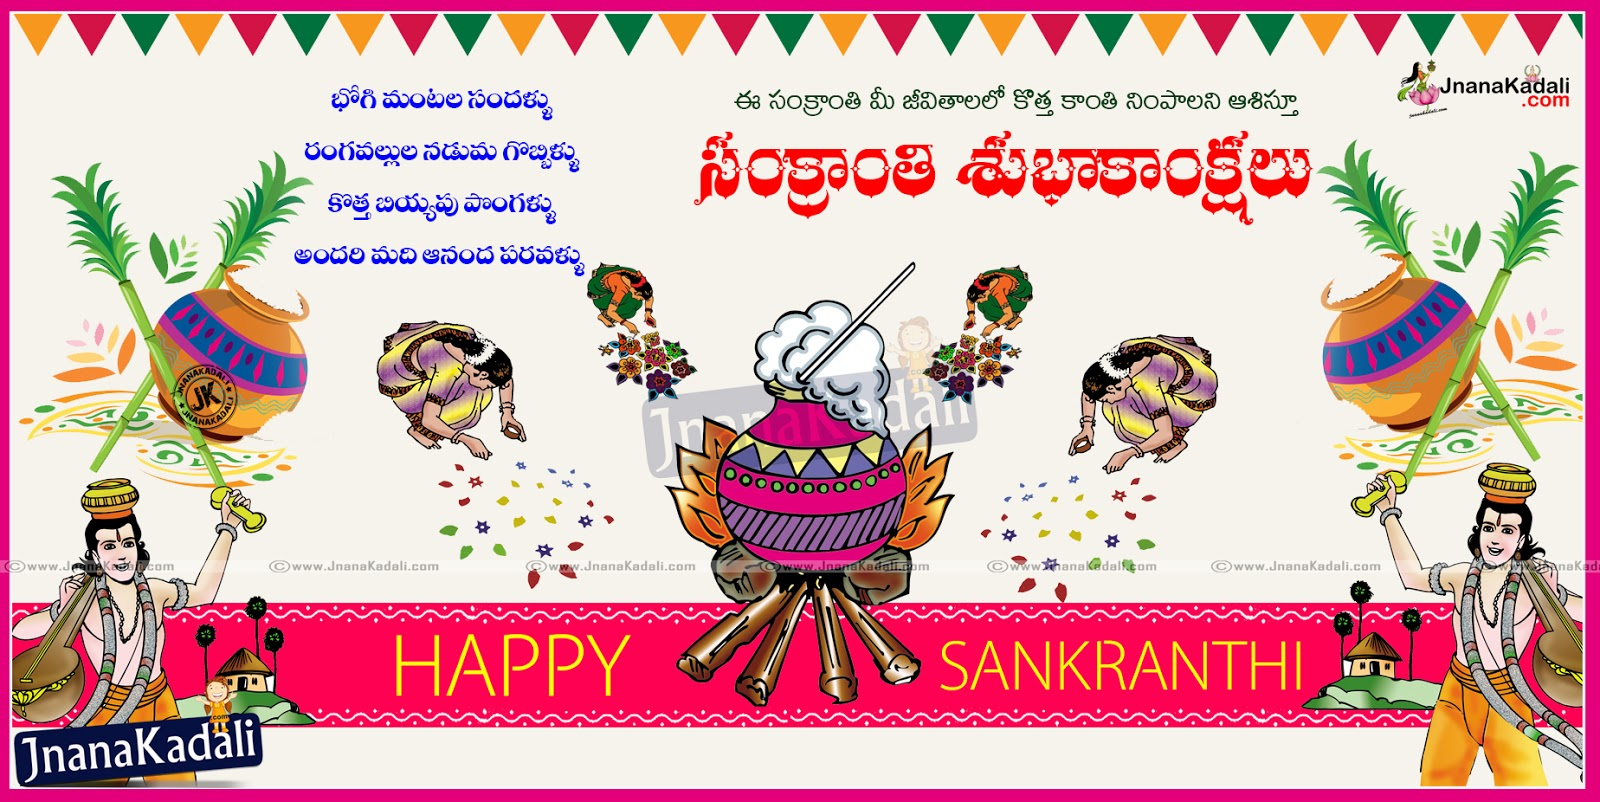 essay on sankranti festival in telugu Makara sankranti, also known as makaraa sankrānti (sanskrit: मकर  सङ्क्रान्ति) or  makara sankranti is one of the few ancient indian festivals  that has been  they also make beautiful and ornate drawings and patterns on  the ground with chalk or flour, called rangoli or muggu in telugu, in front of  their homes.